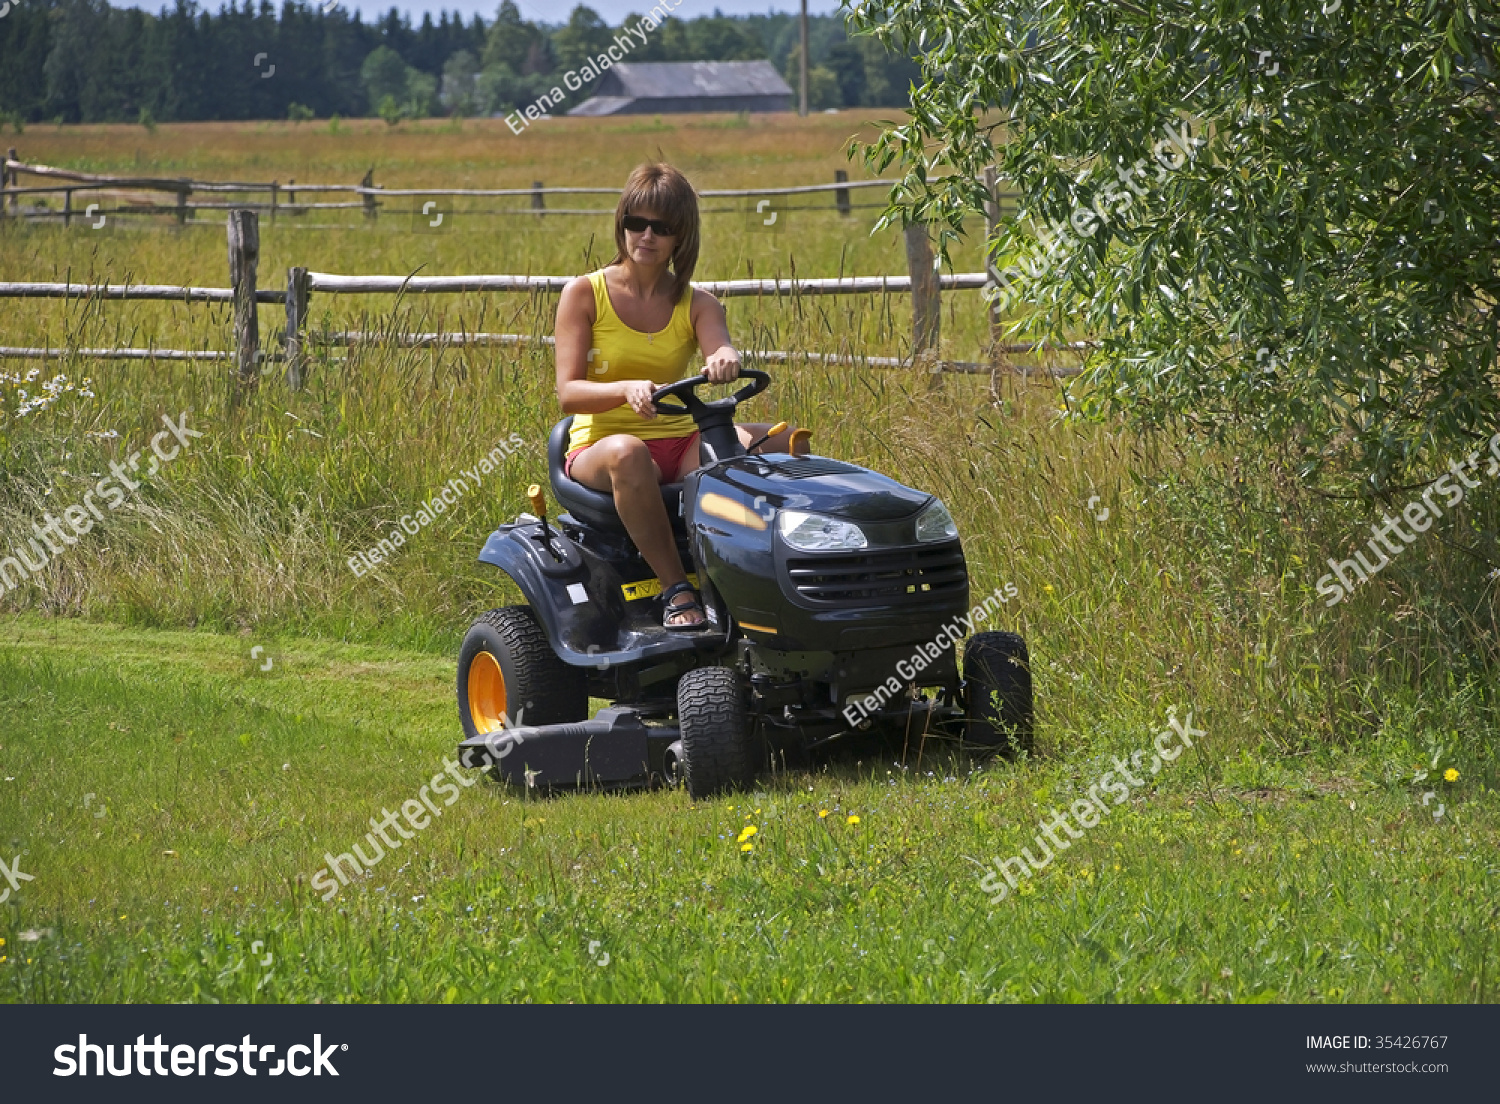 Absurd situation naked woman on riding lawnmower